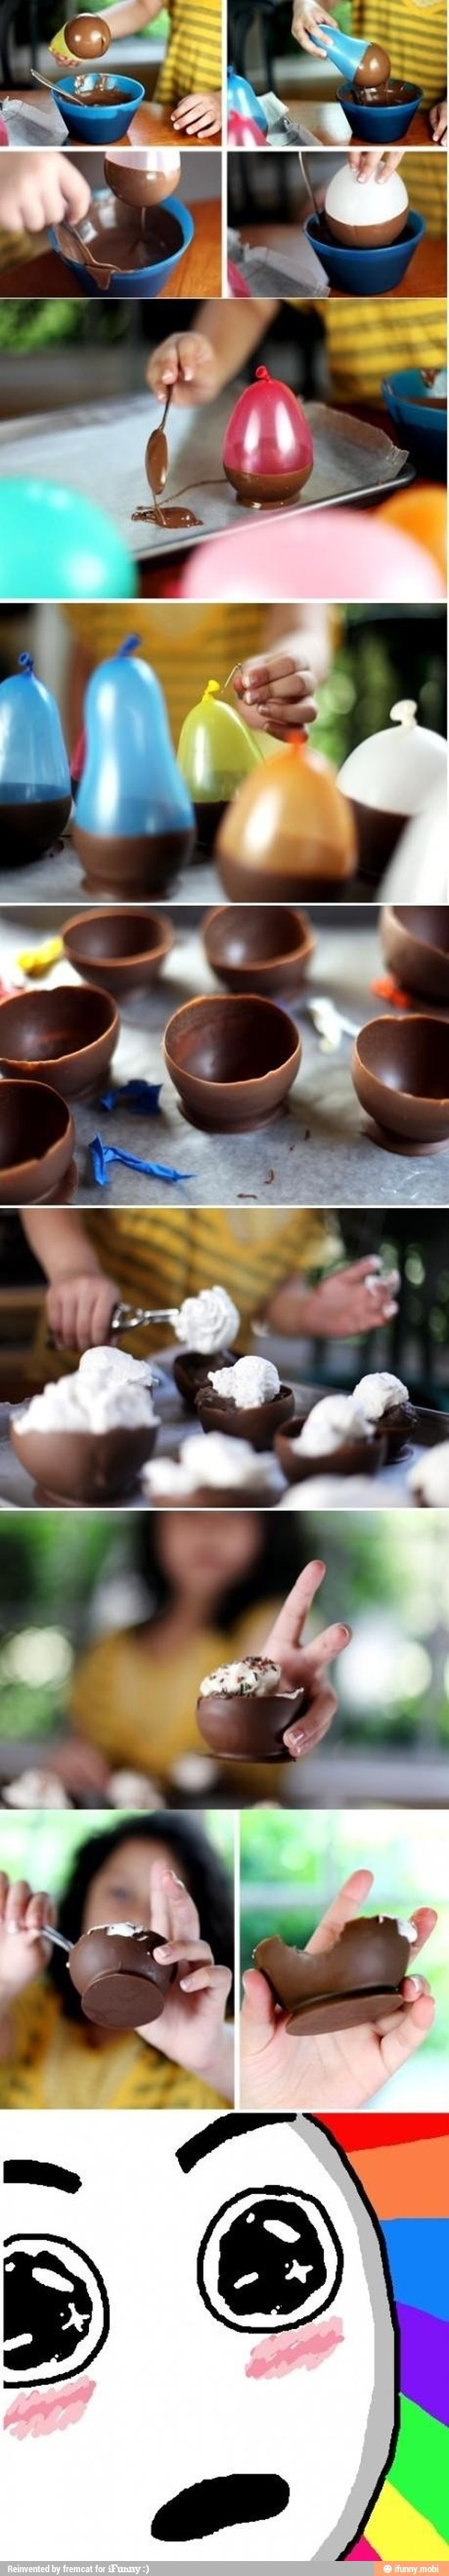 Chocolate ballon bowls- to fill with chocolate mousse?